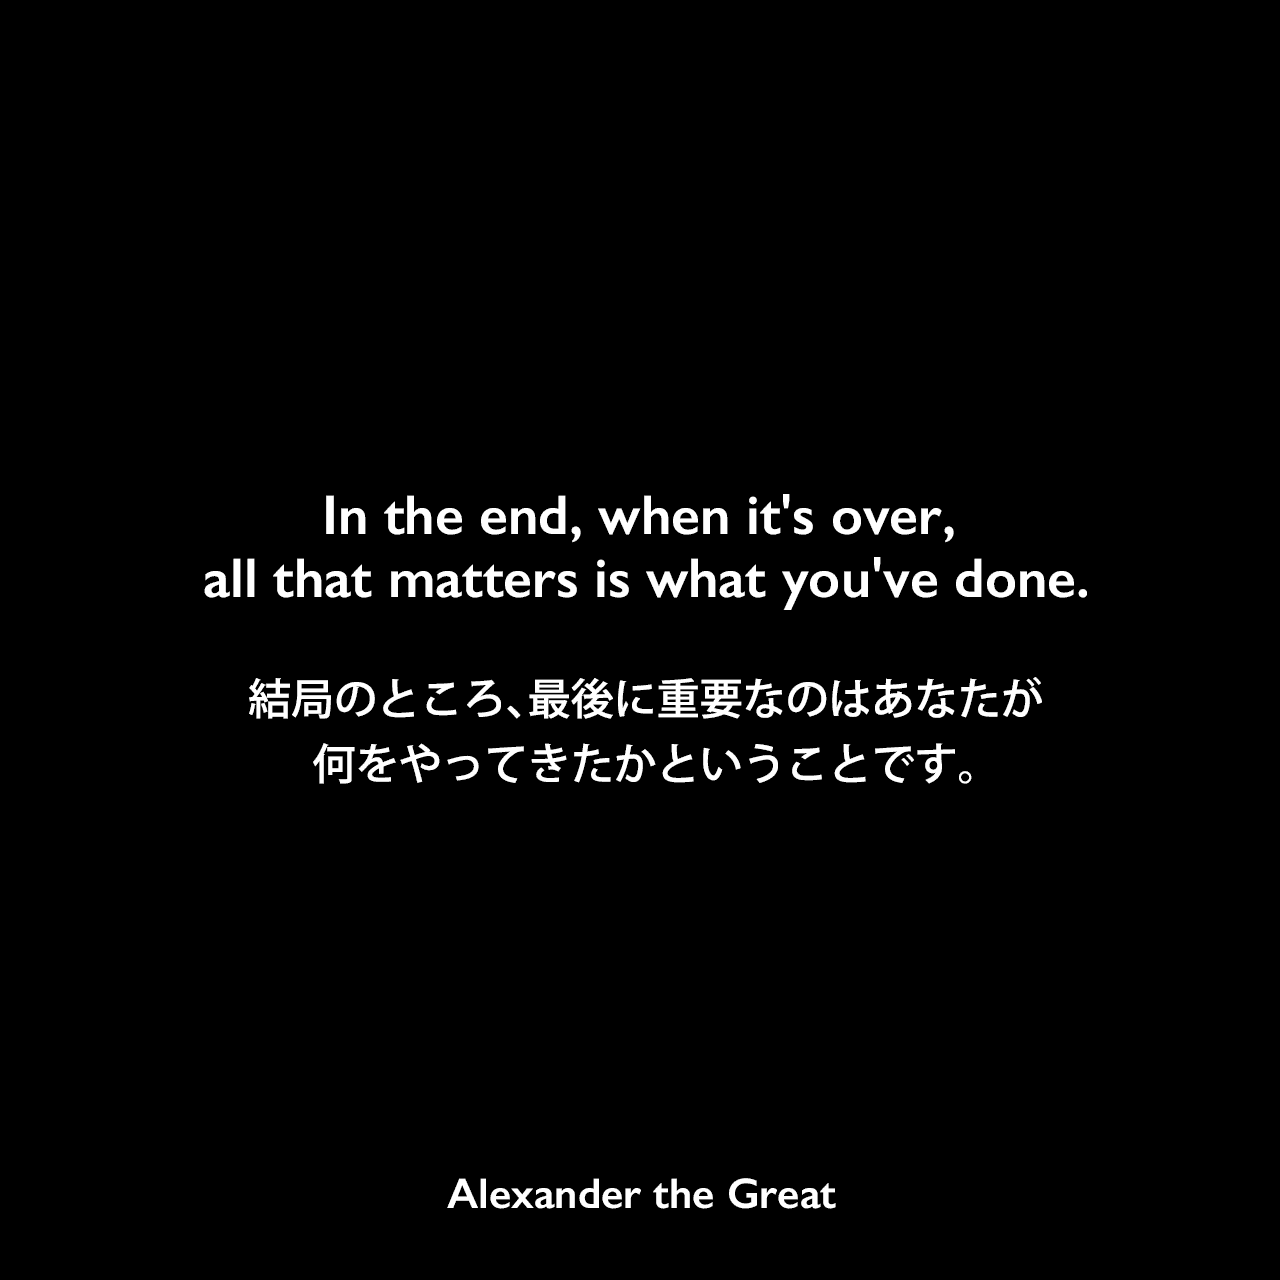 In the end, when it's over, all that matters is what you've done.結局のところ、最後に重要なのはあなたが何をやってきたかということです。